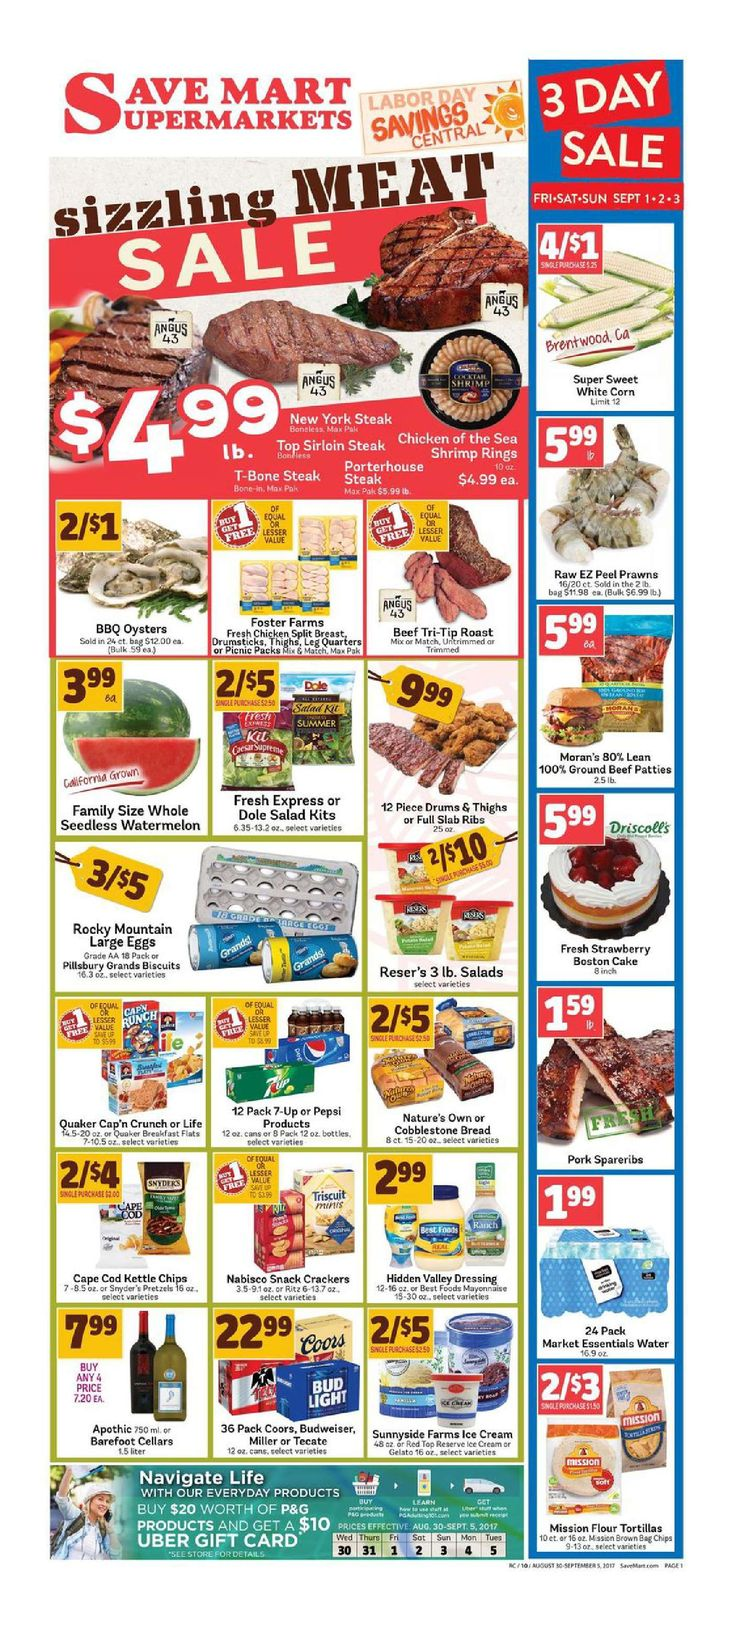 Save Mart Weekly ad August 30 - September 5, 2017 - http://www.olcatalog.com/save-mart/save-mart-weekly-ad.html